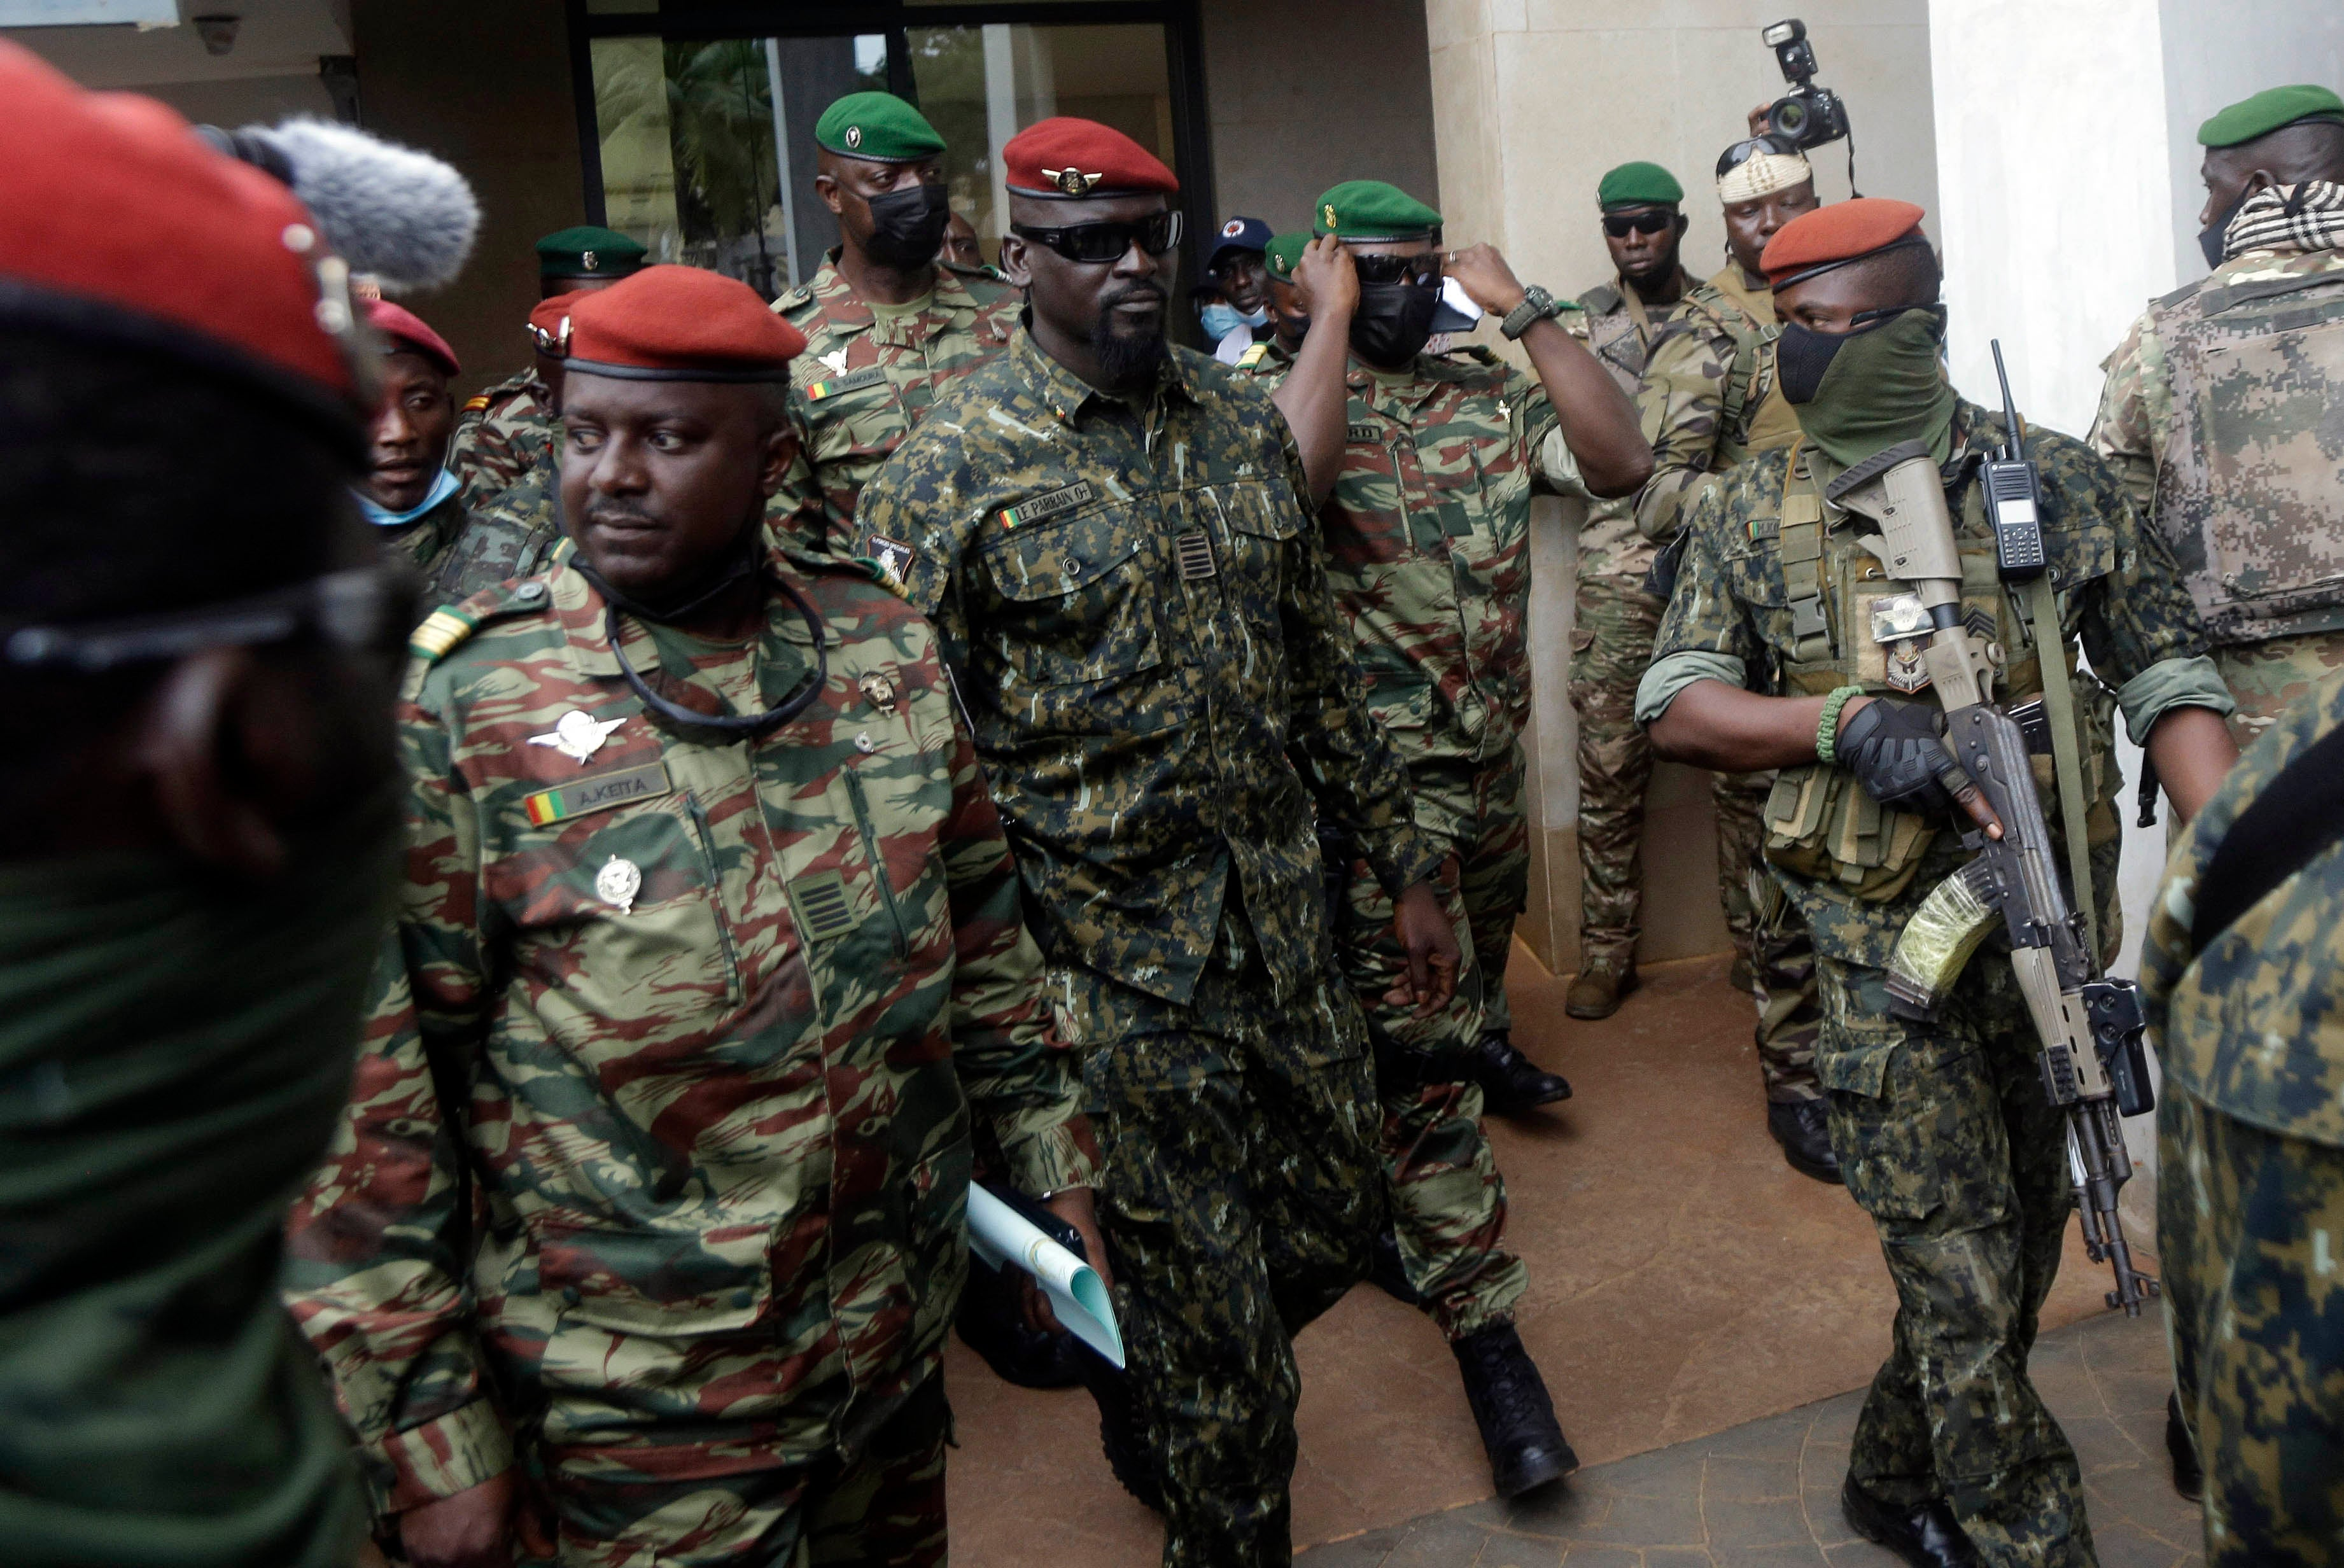 Guinea's Col. Mamady Doumbouya, center, is heavily guarded by soldiers after a meeting with ECOWAS delegation in Conakry, Guinea on September 10, 2021.